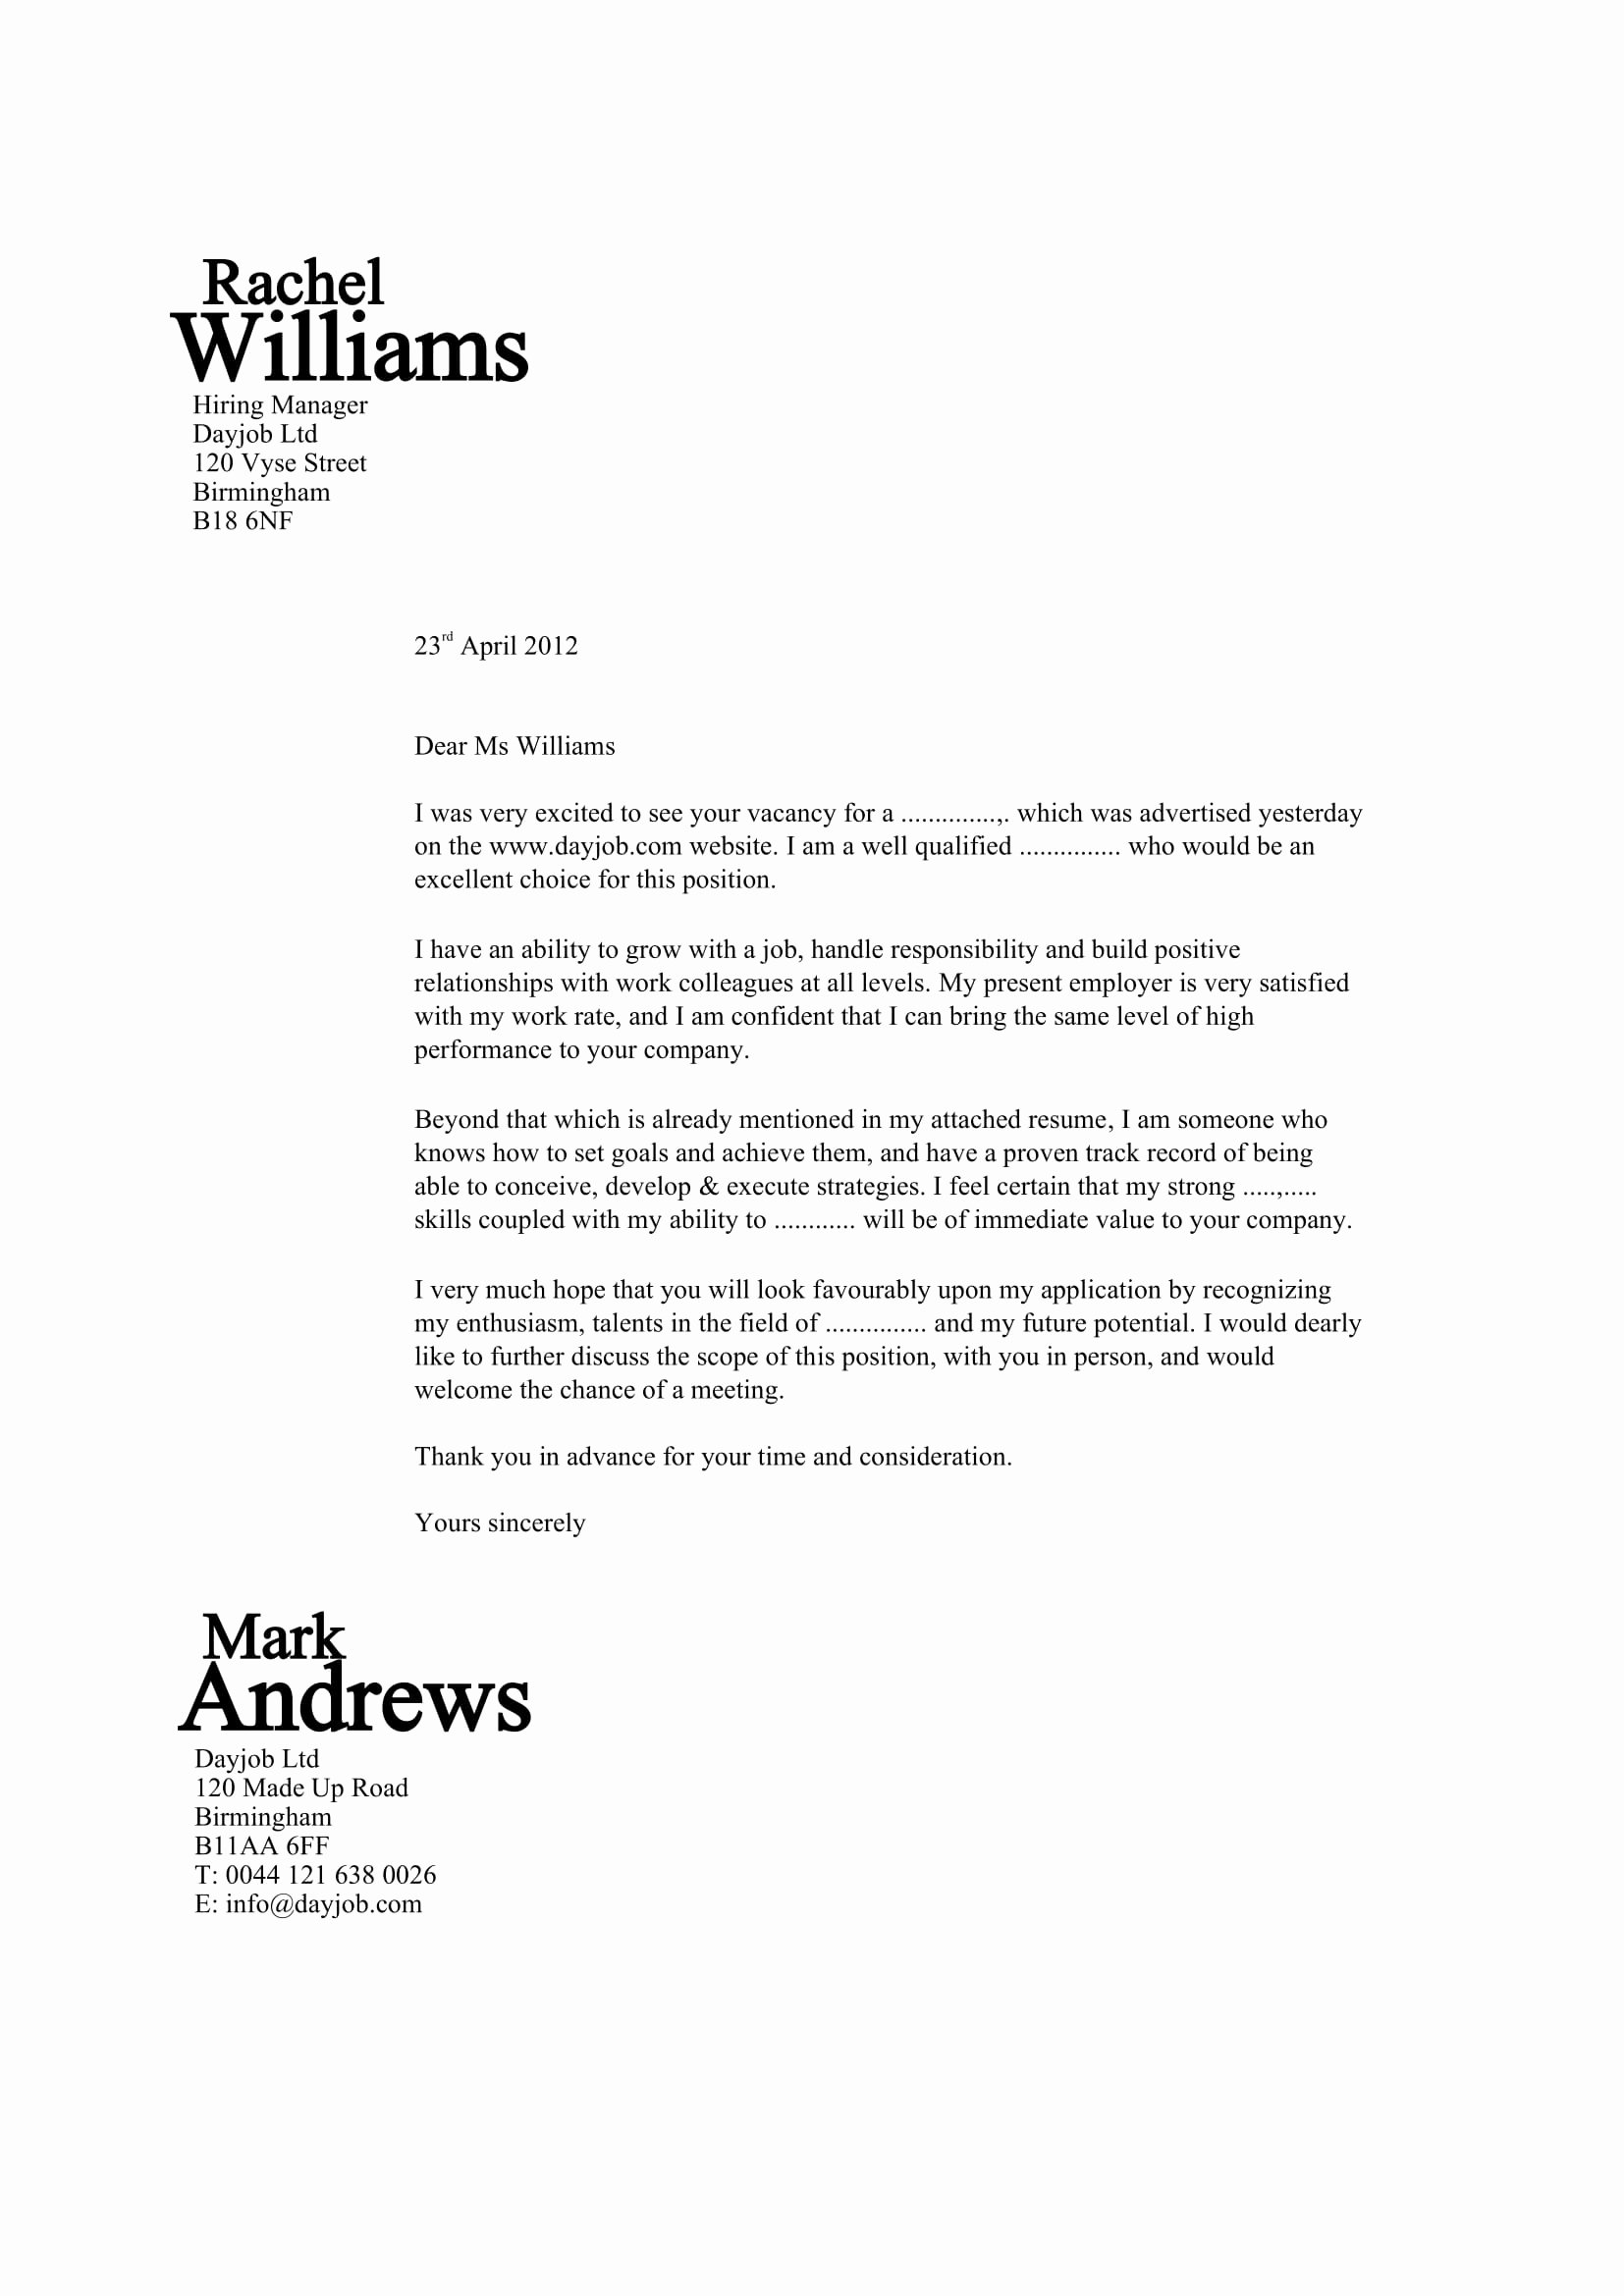 Best Job Cover Letter Inspirational 32 Best Sample Cover Letter Examples for Job Applicants